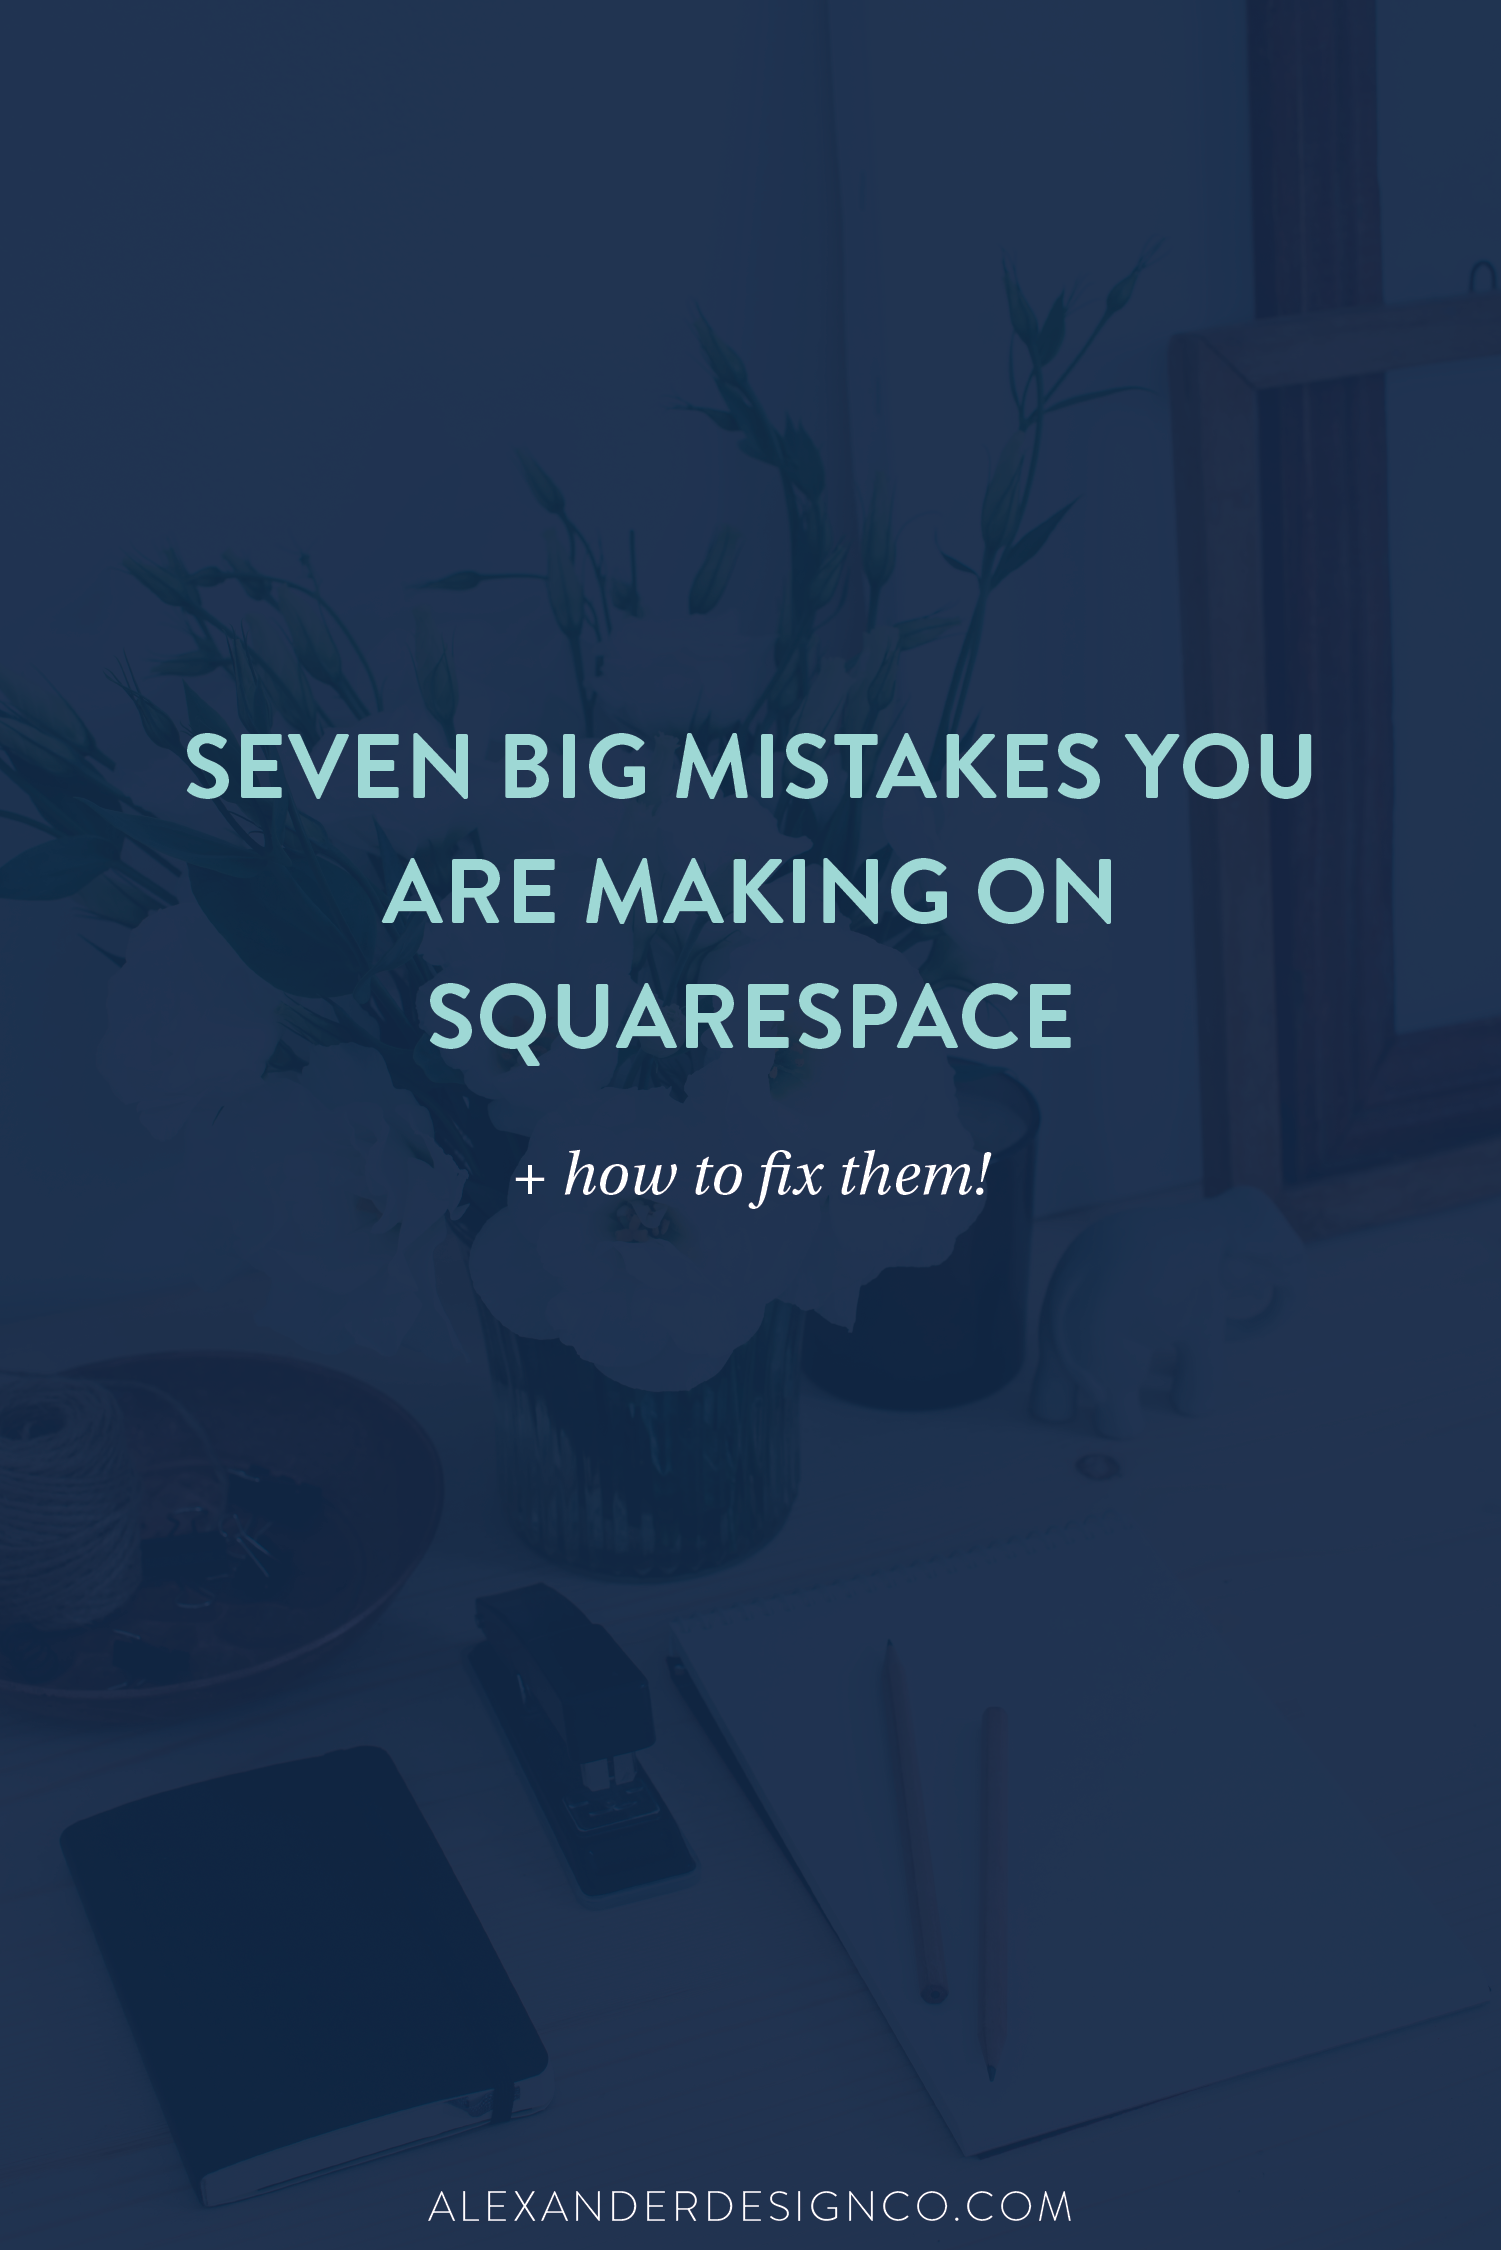 Seven Big Mistakes you are making on Squarespace